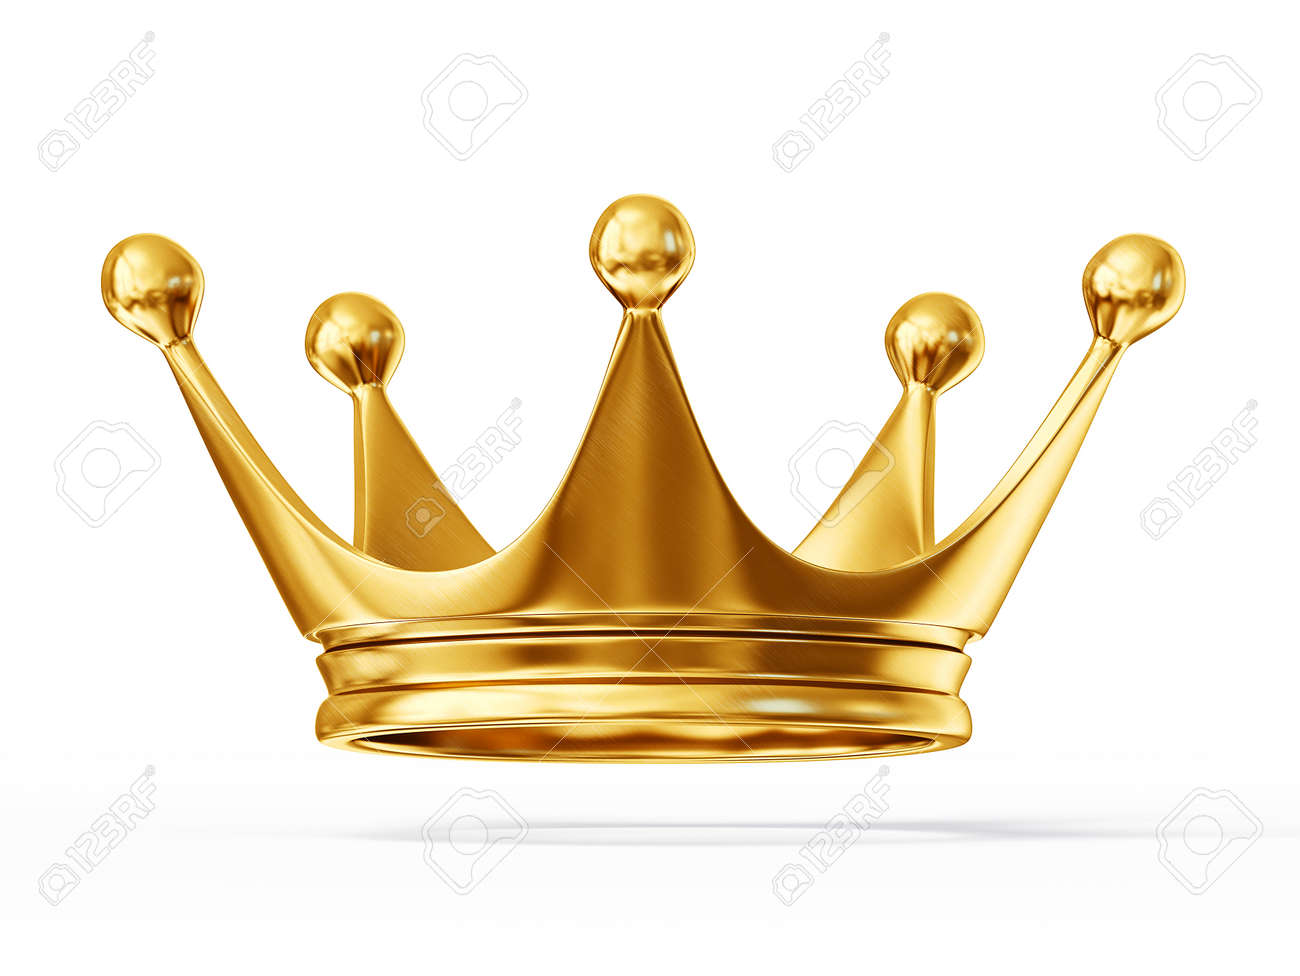 hight resolution of golden crown isolated on a white background